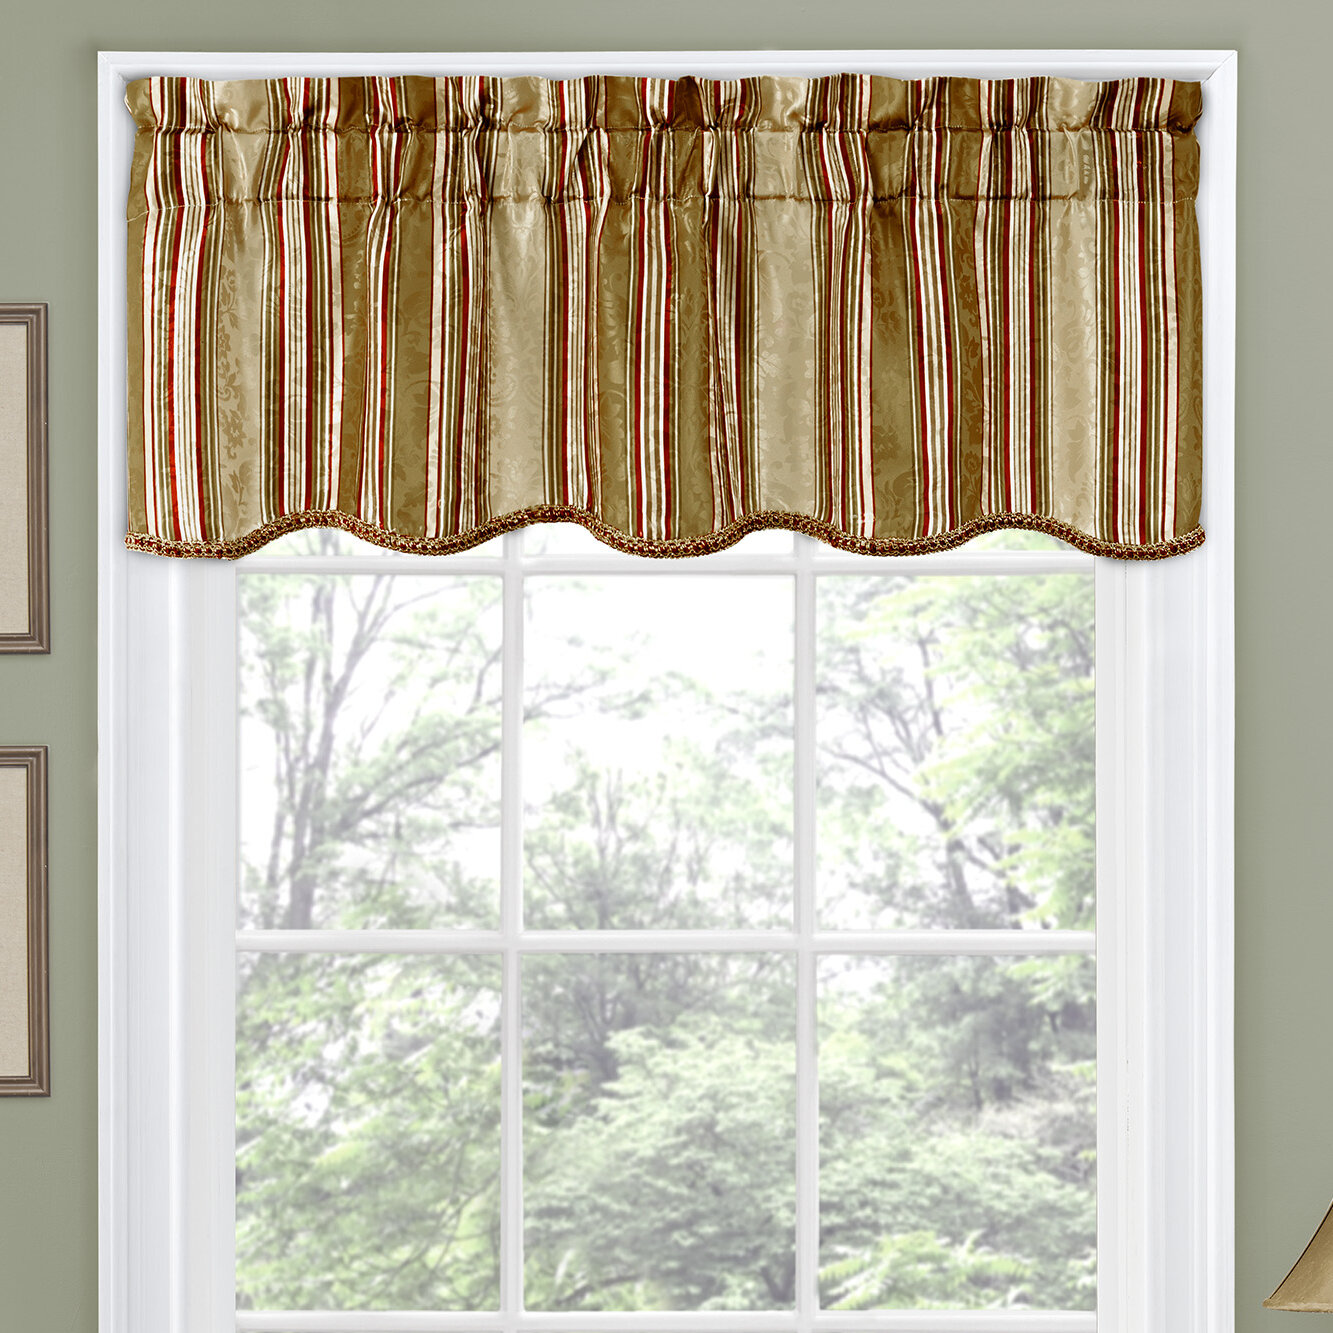 curtain straight united curtains com zoom burgundy curtainshop products with valance dupioni silk